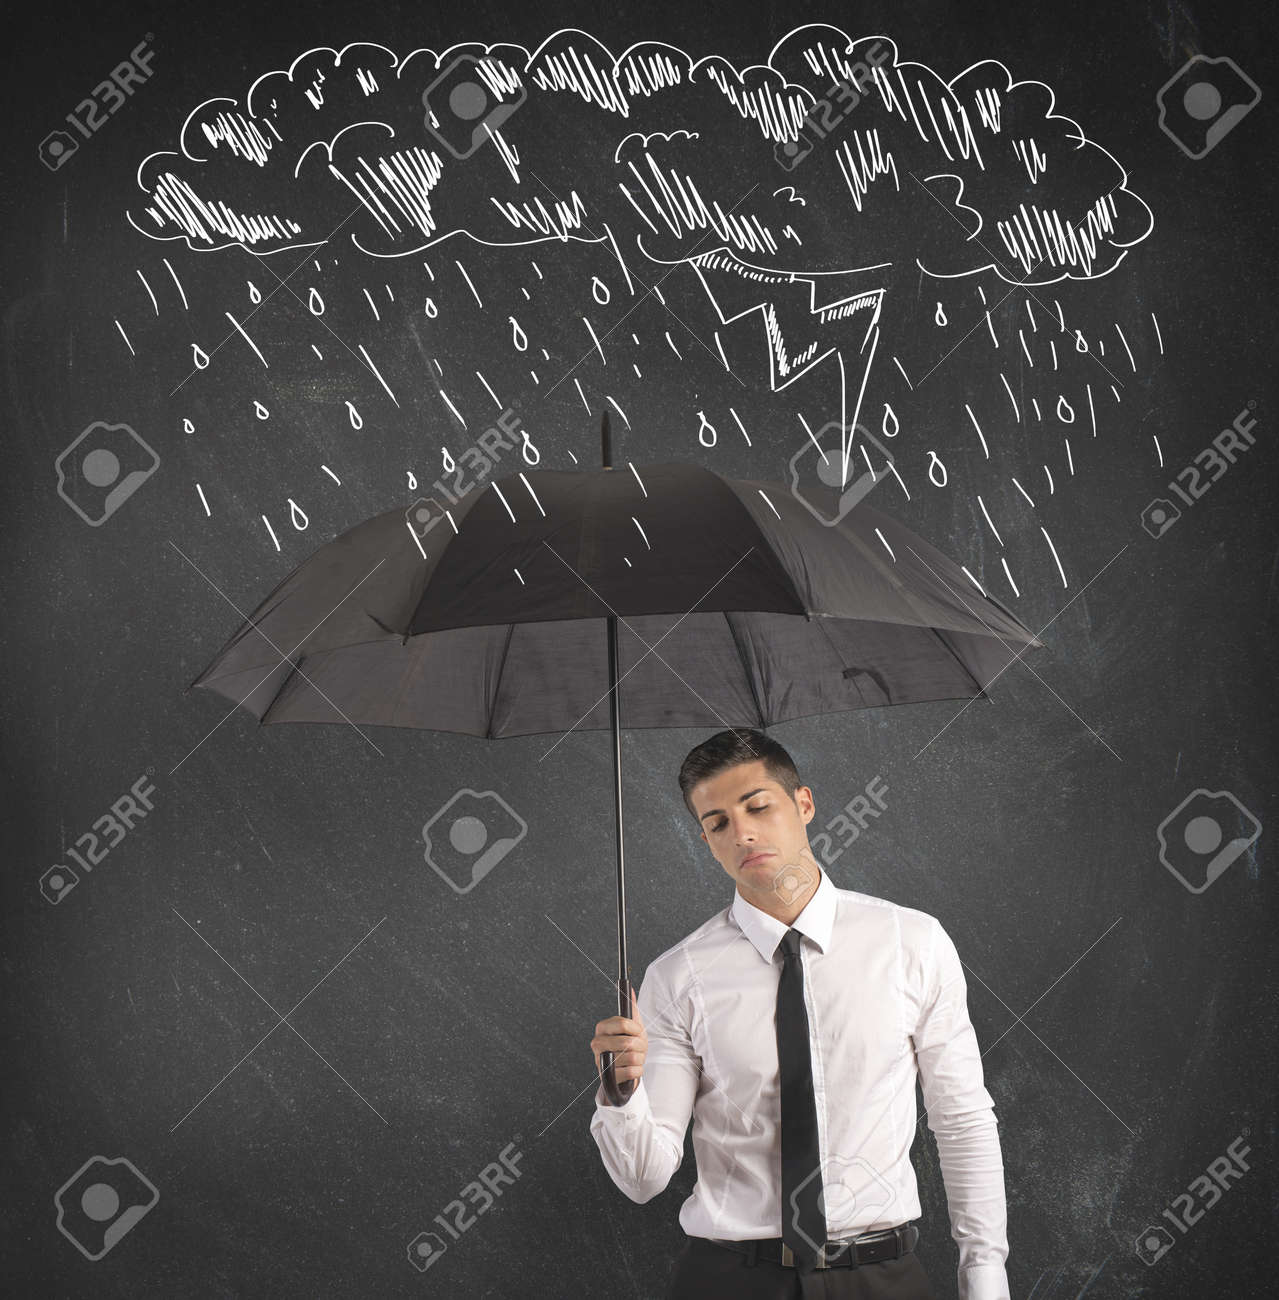 Concept of difficulty in business with umbrella Stock Photo - 20706240